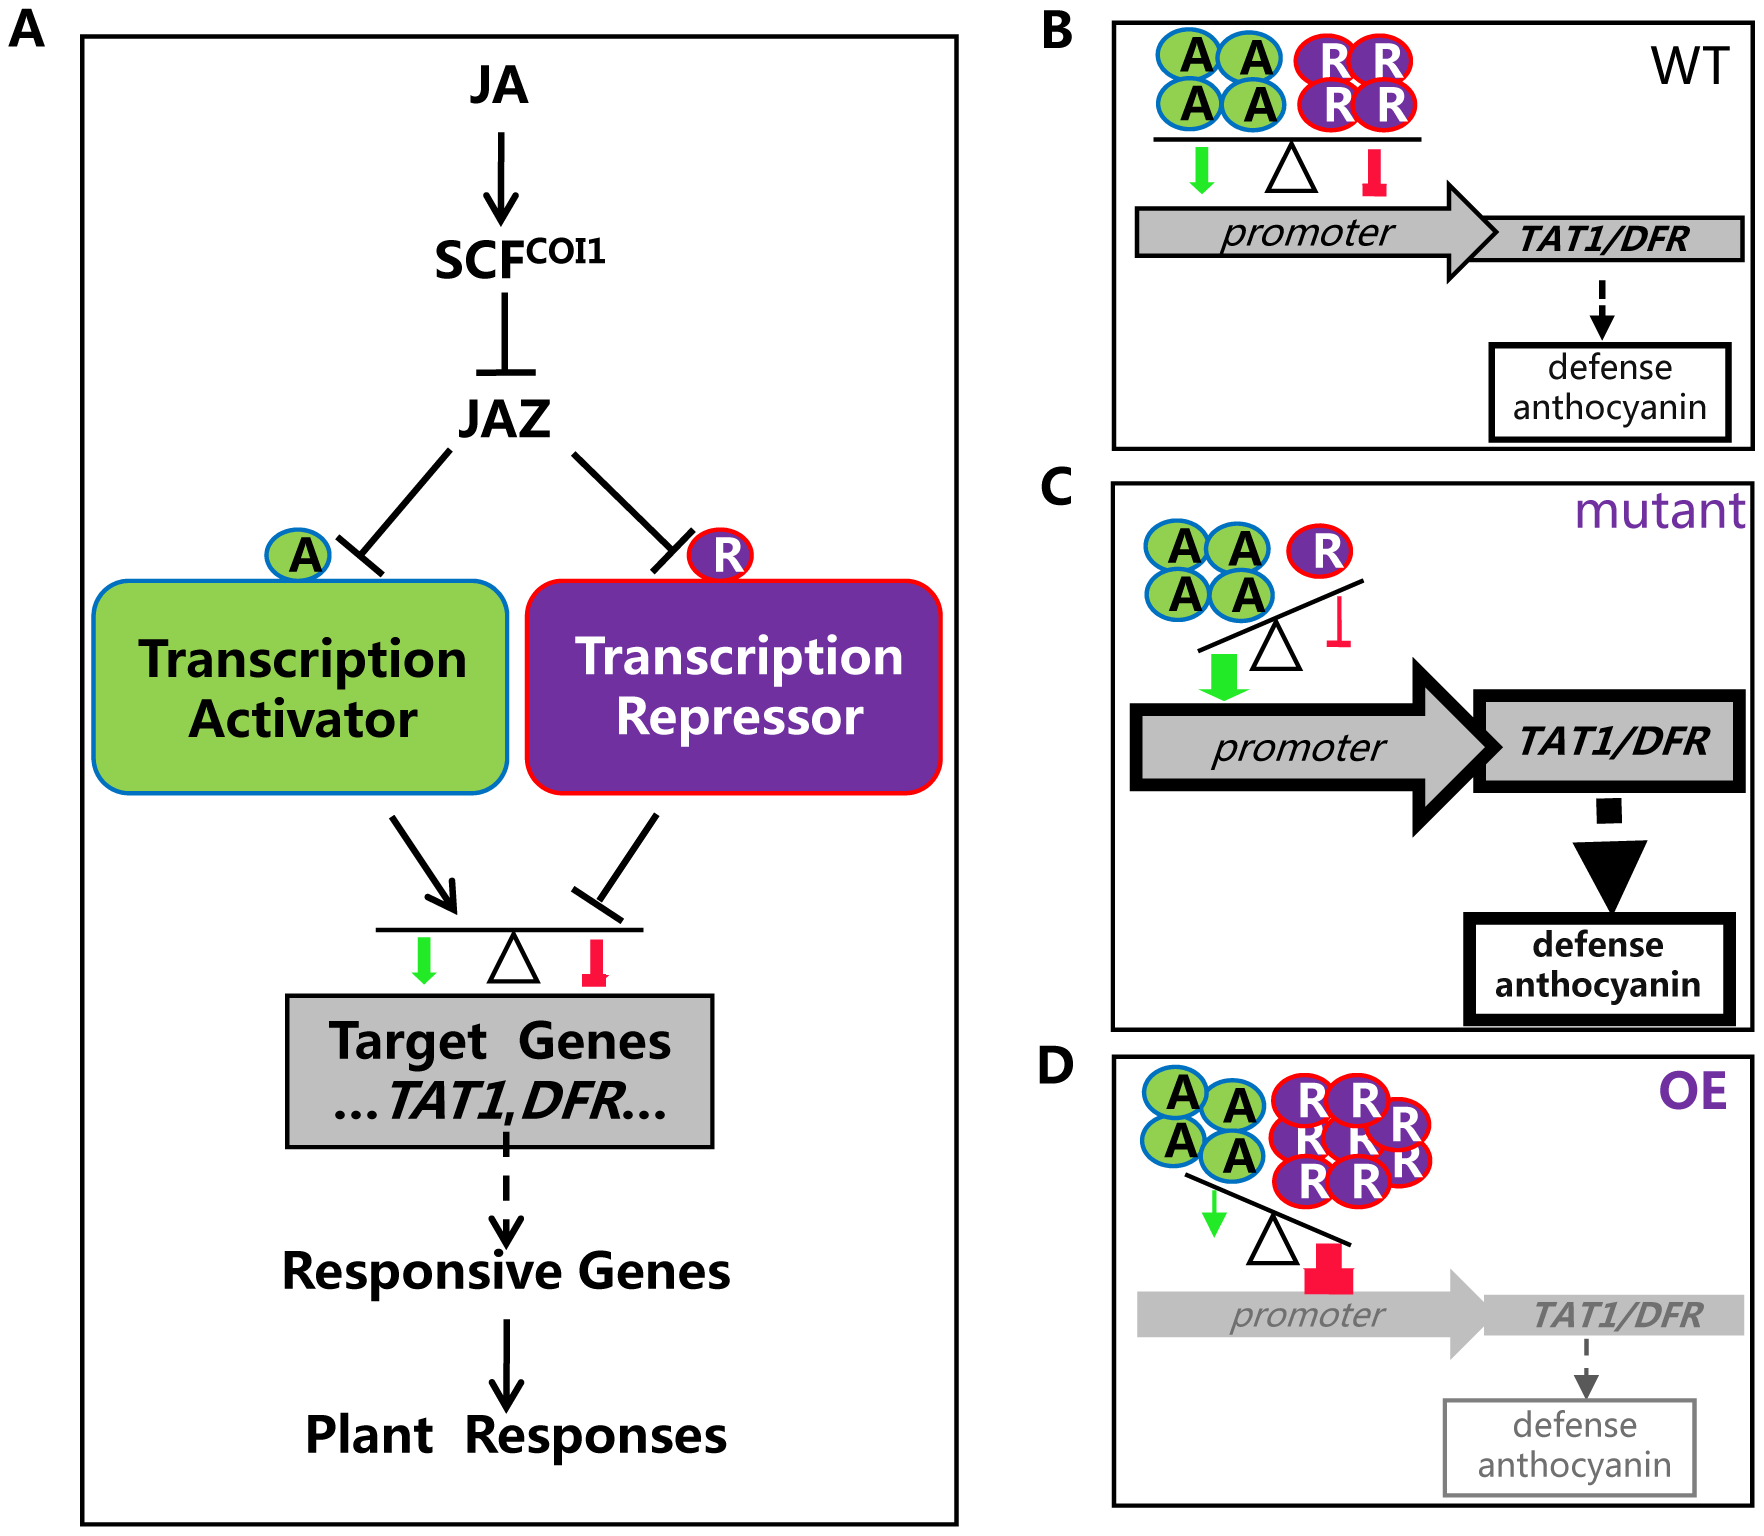 A simplified model for coordinated regulation of JA responses by JAZ-targeted transcription activators and transcription repressors.